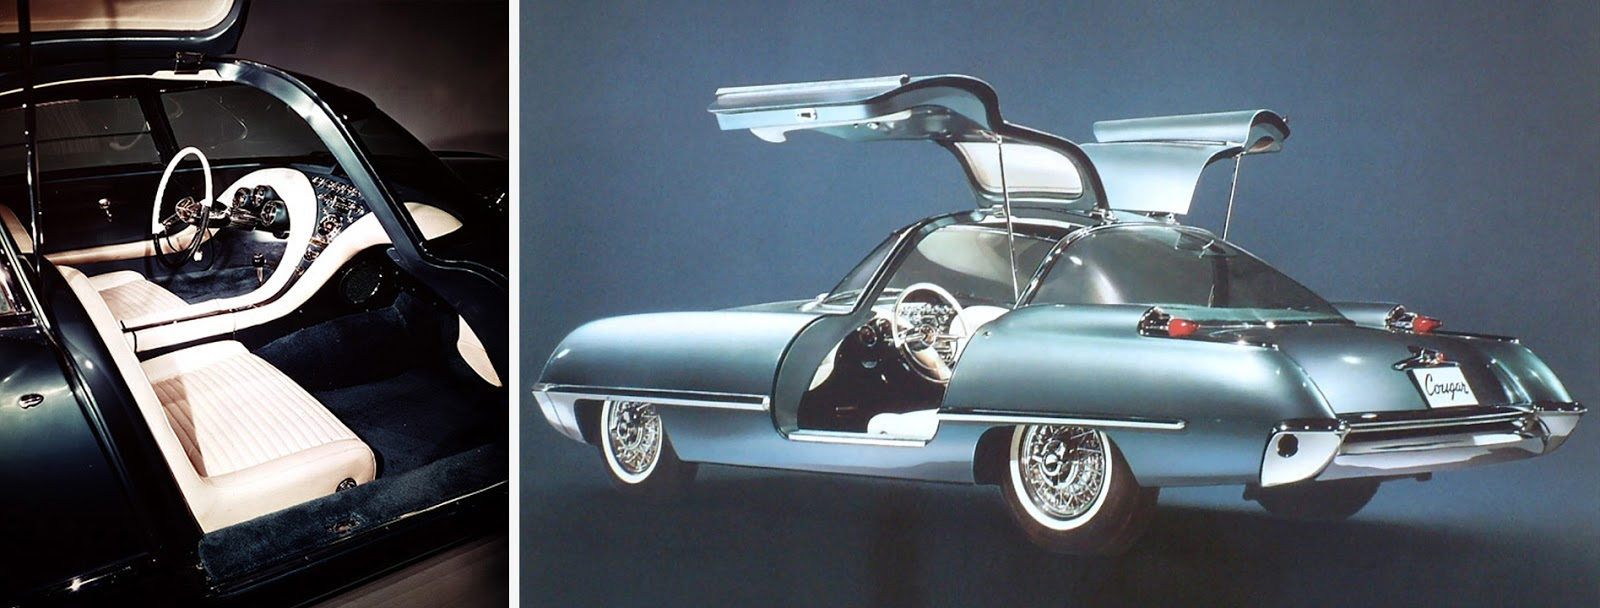 Ford cougar 406 concept 1962